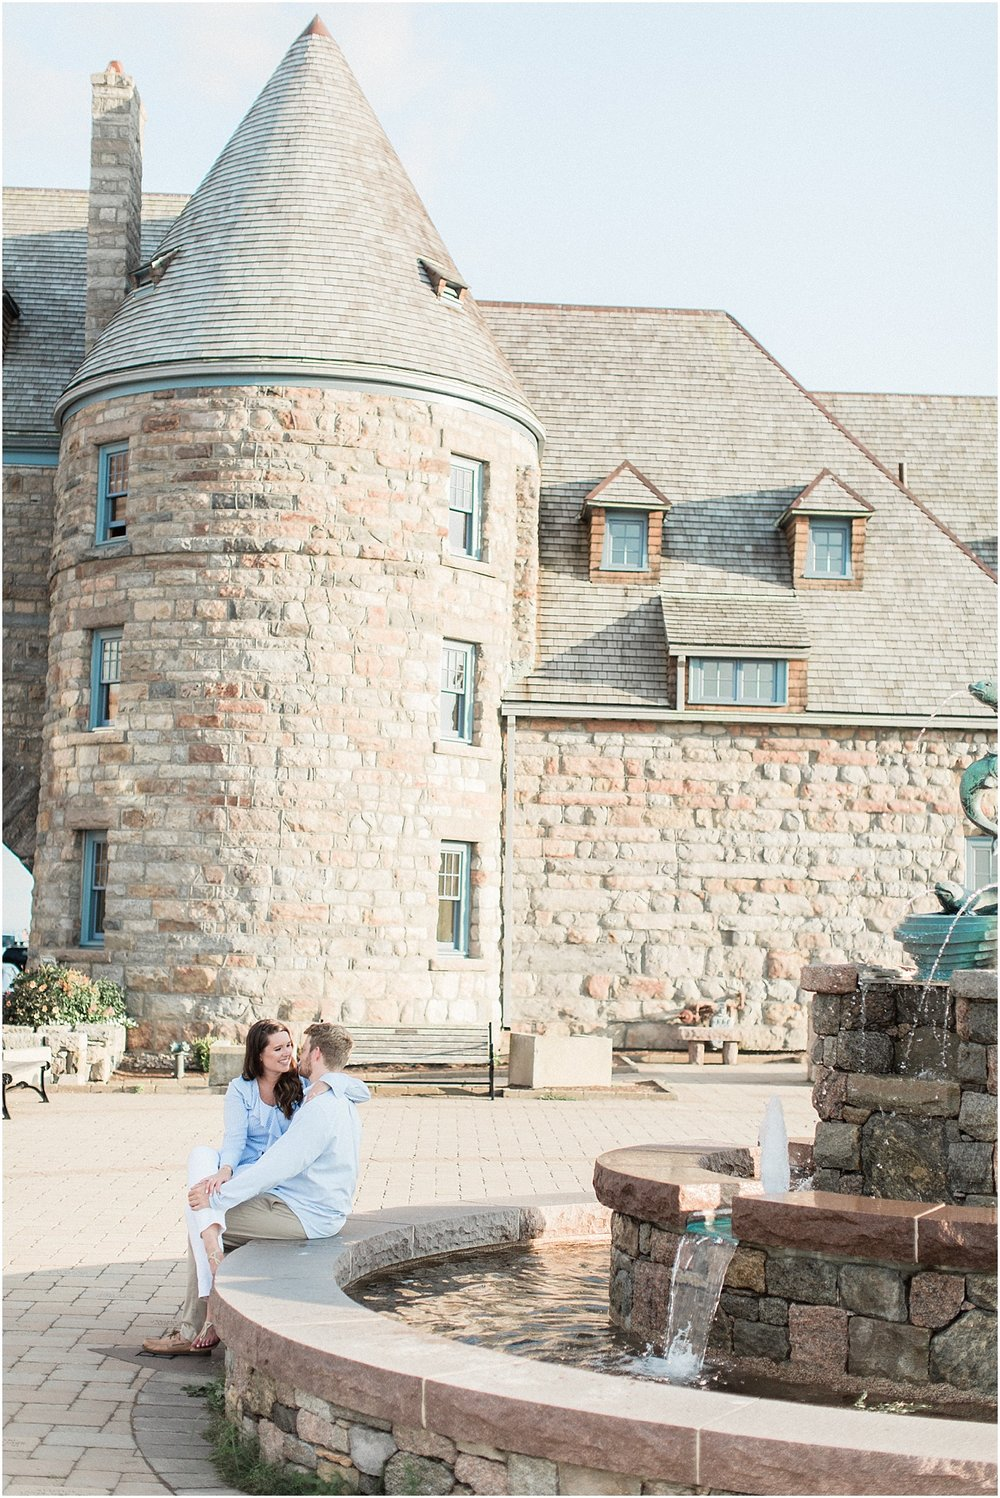 heather_chris_narragansett_beer_cliff_walk_beach_rhode_island_ri_cape_cod_boston_wedding_photographer_meredith_jane_photography_photo_0736.jpg